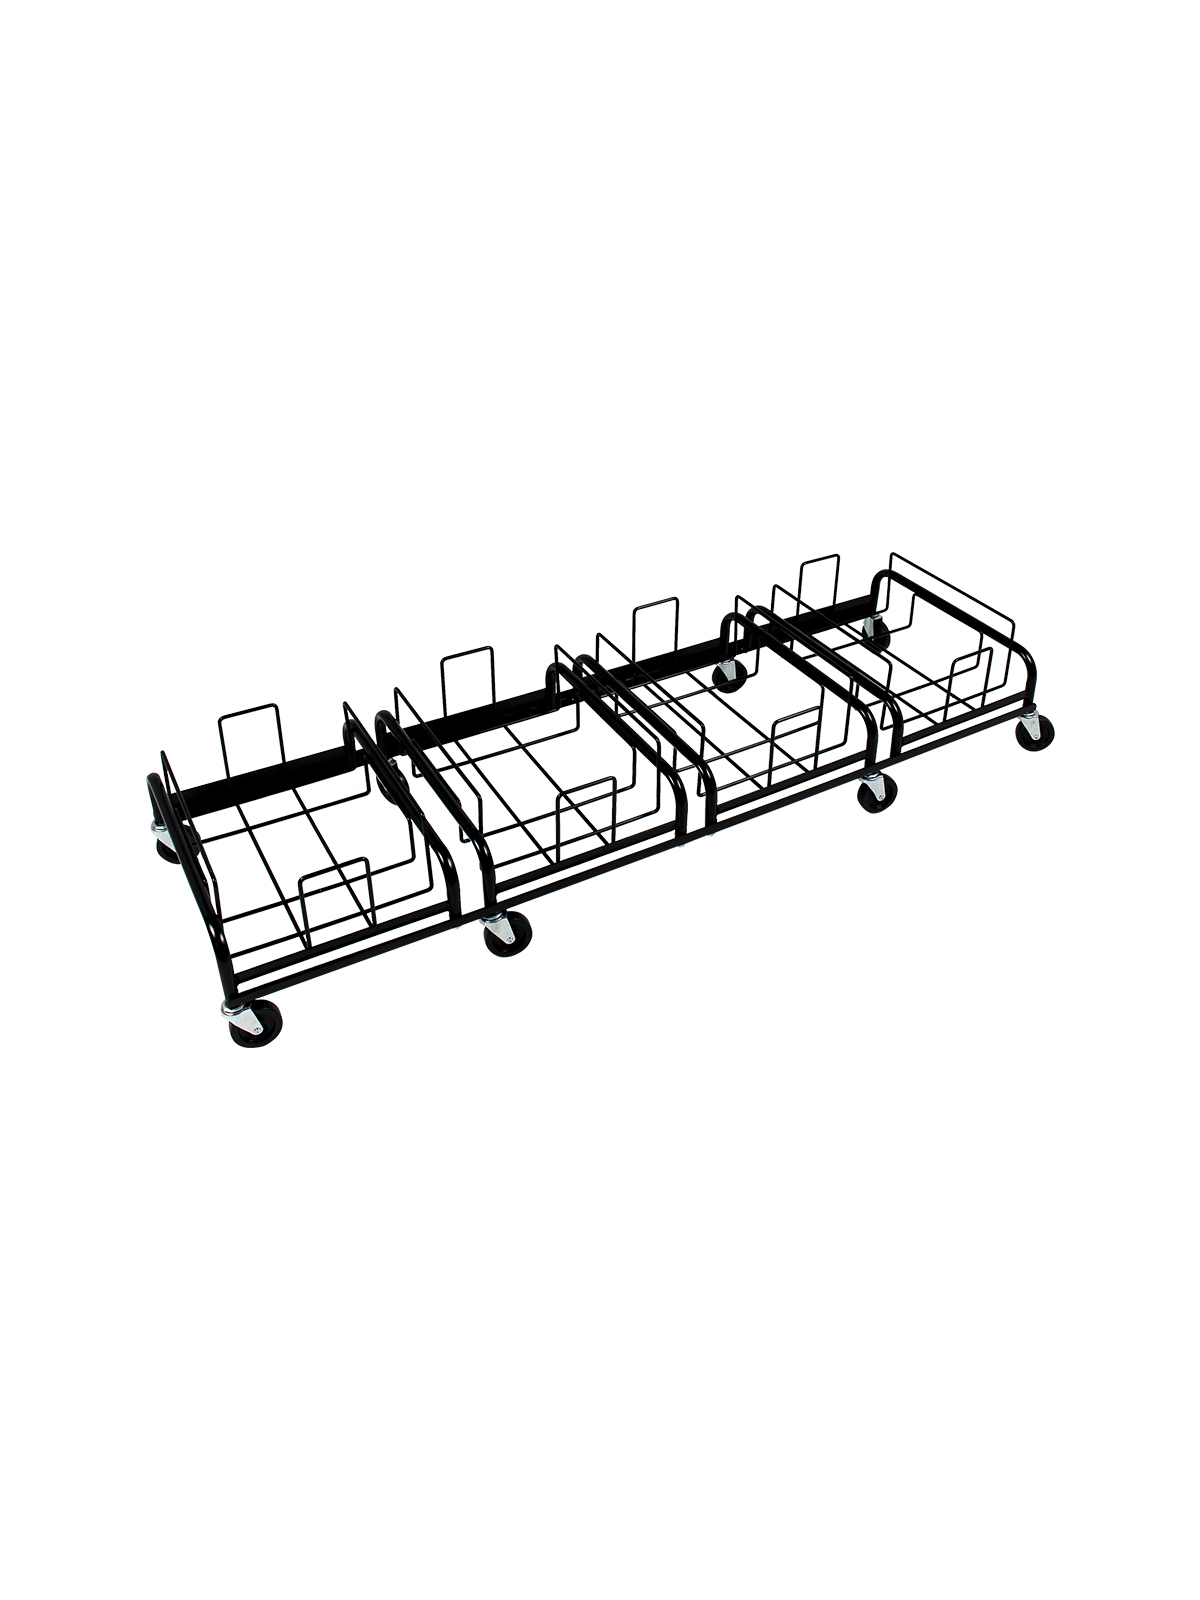 WASTE WATCHER® XL QUAD DOLLY [4 DOLLIES, 8 CASTERS]